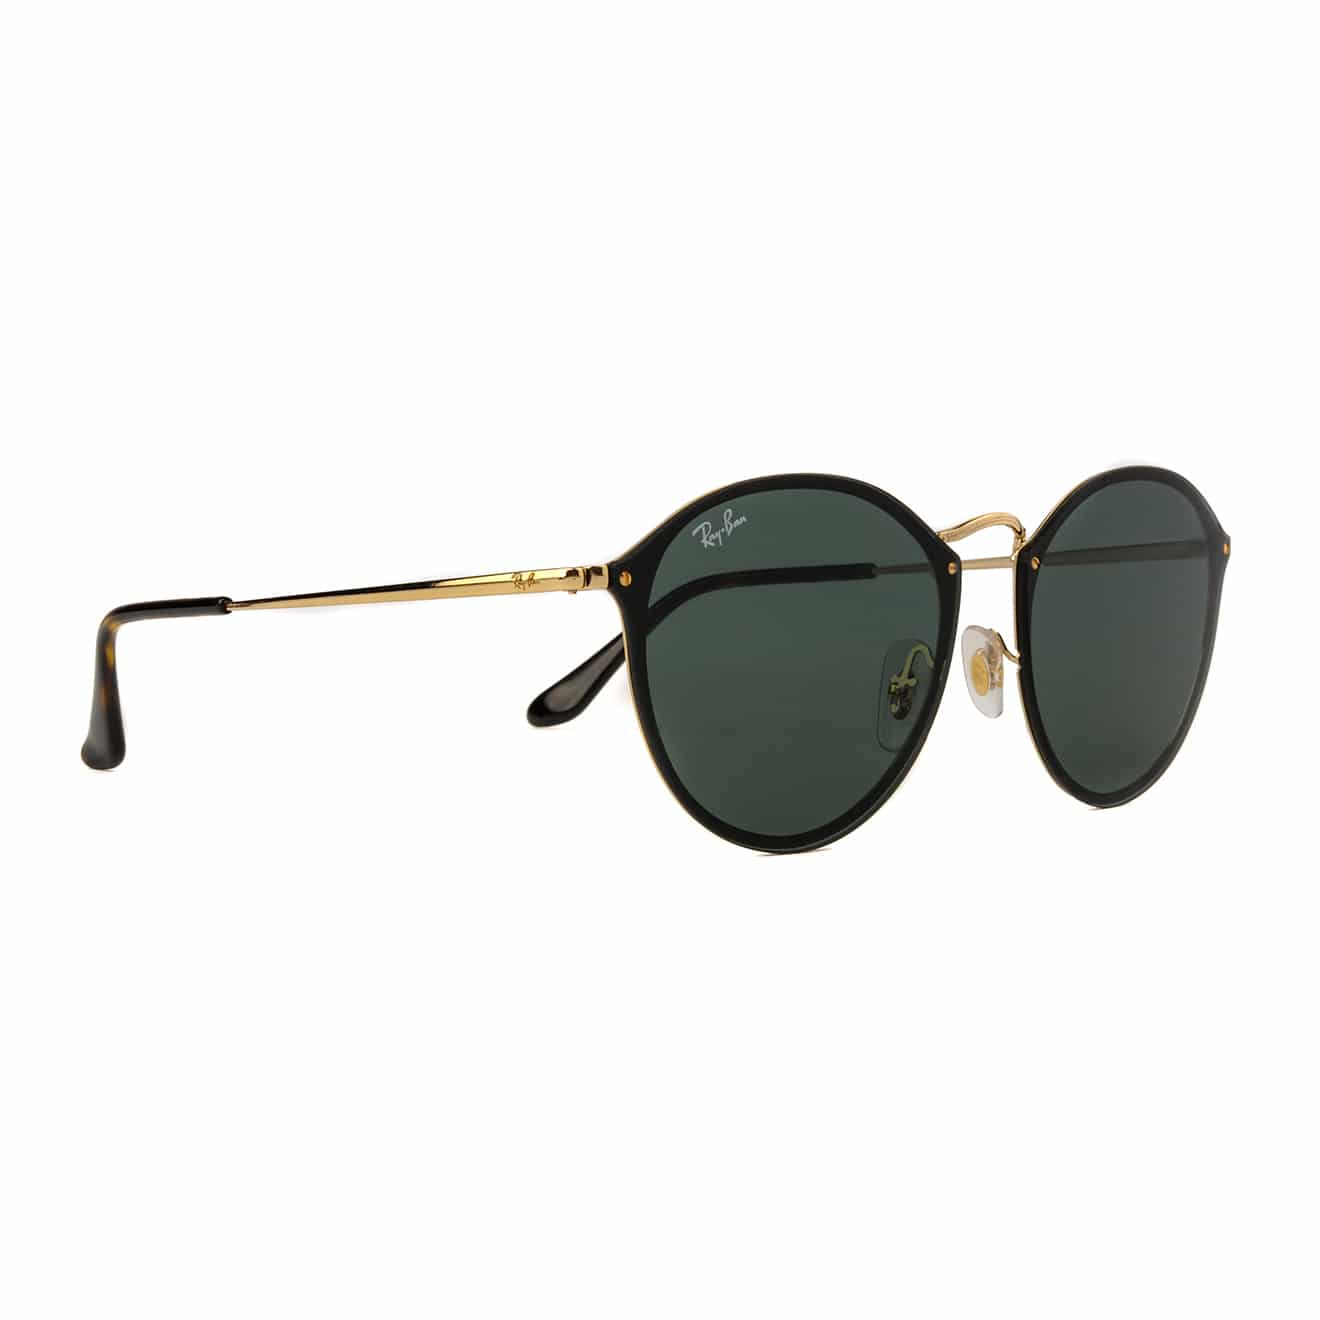 Ray-Ban RB3574N 001 71 59 Sunglasses - Parasol Store c3bccf225f